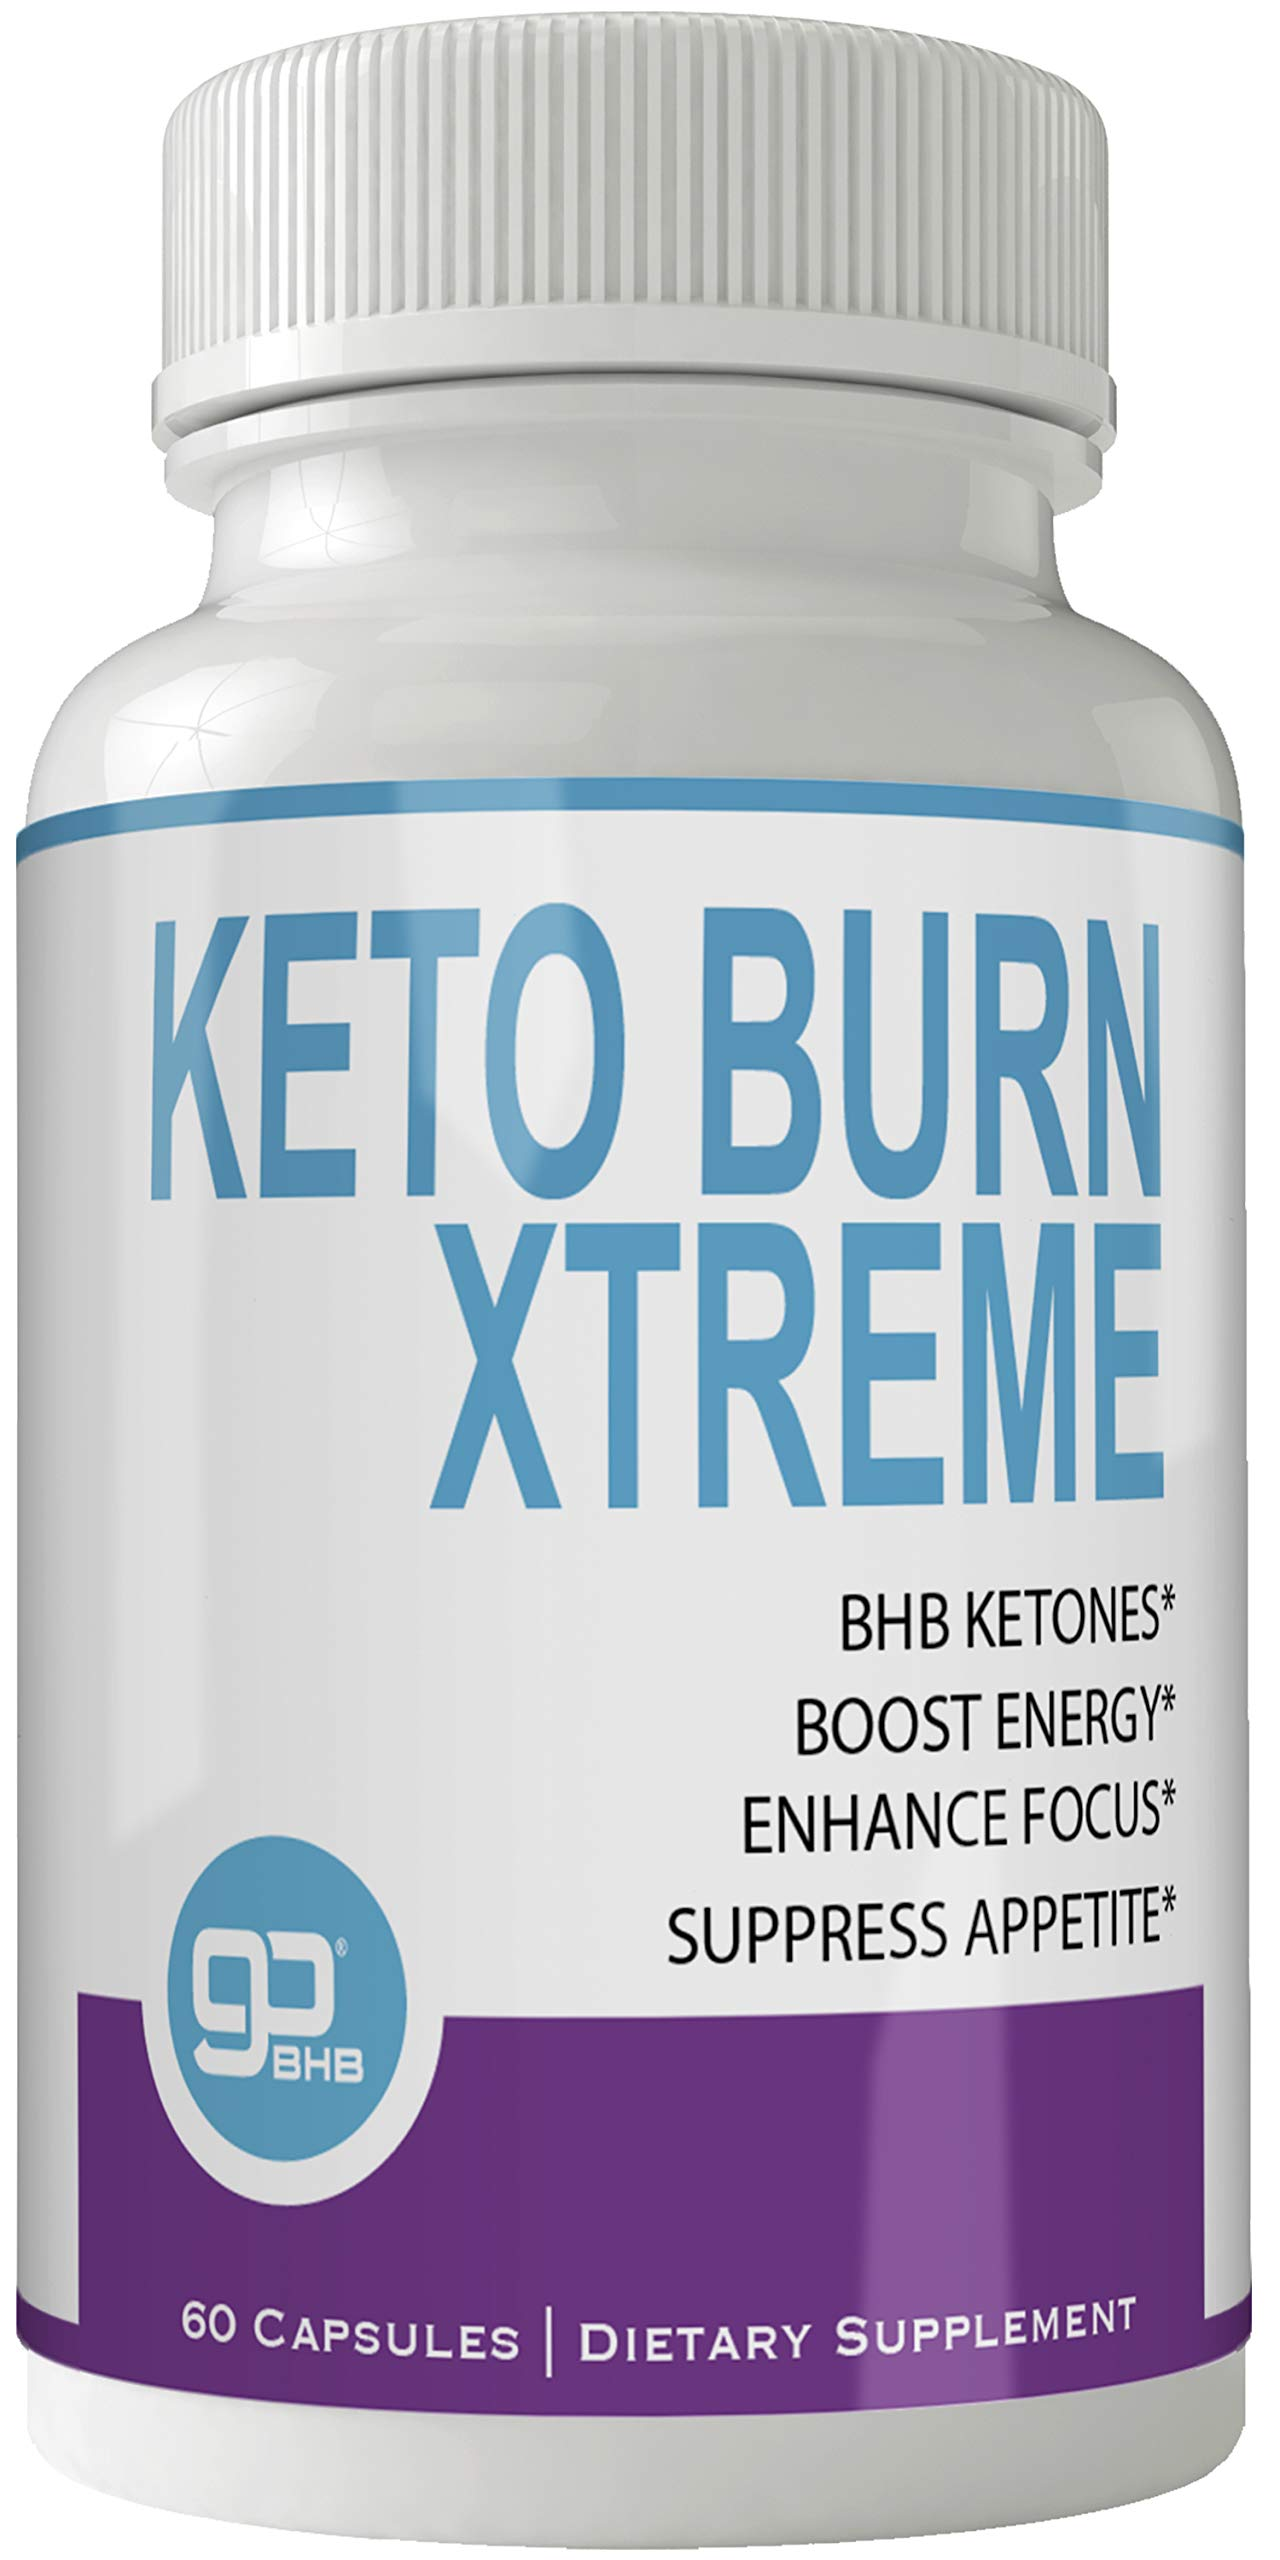 Keto Burn Xtreme Weight Loss Pills, Extreme Natural Ketogenic Burn Fat Supplement, 800 mg Formula with New GO BHB Salts Formula, Advanced Appetite Suppressant Capsules